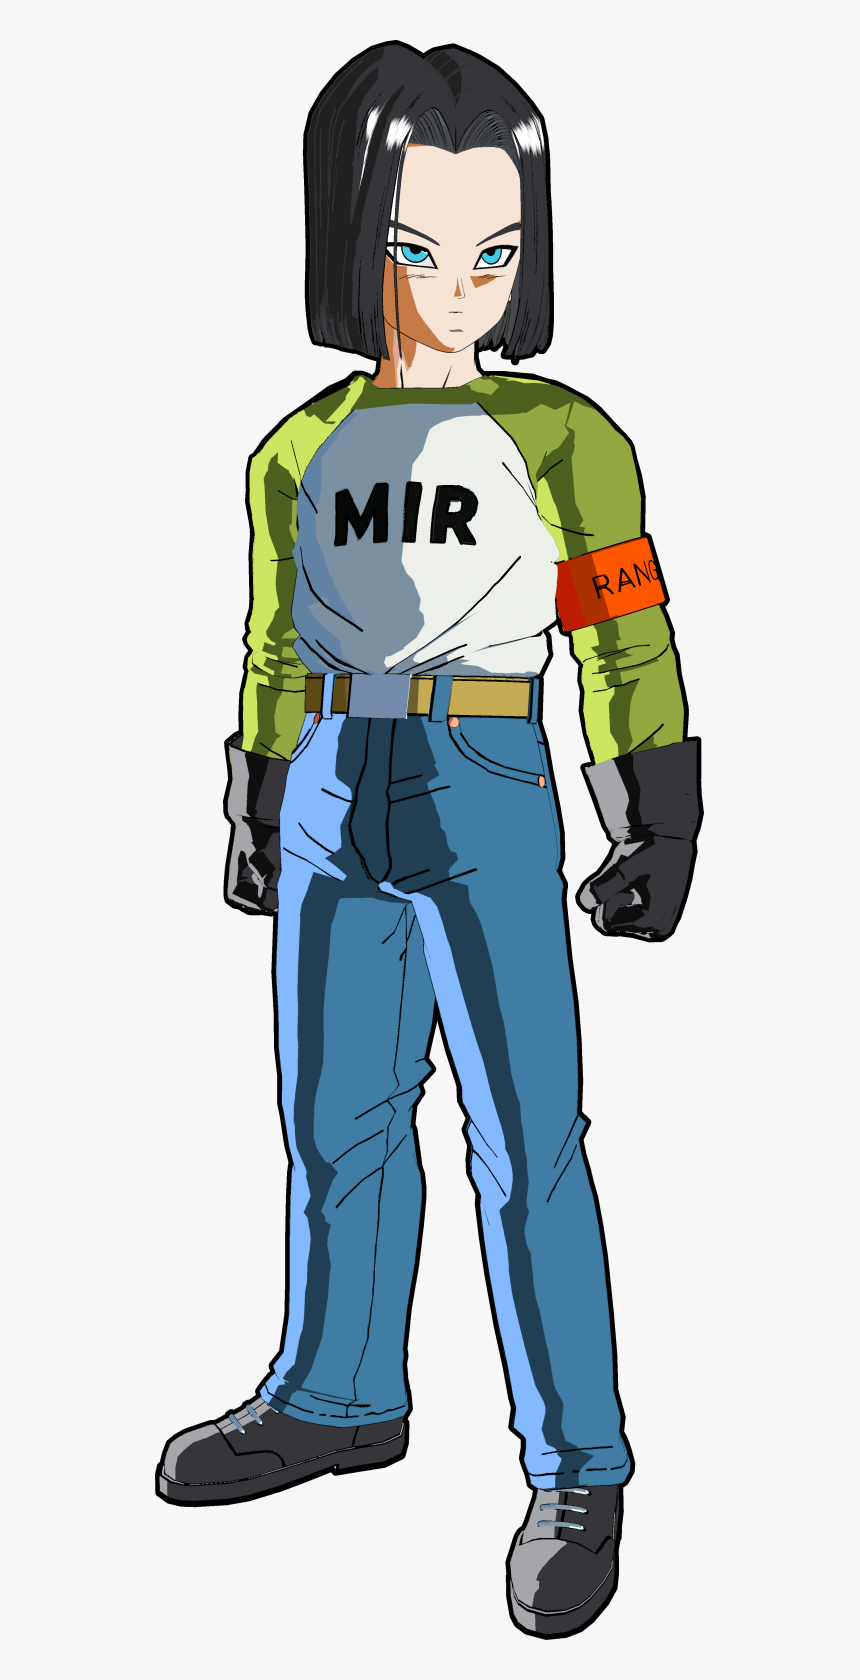 Android 18 Tournament Of Power Png, Transparent Png, Free Download